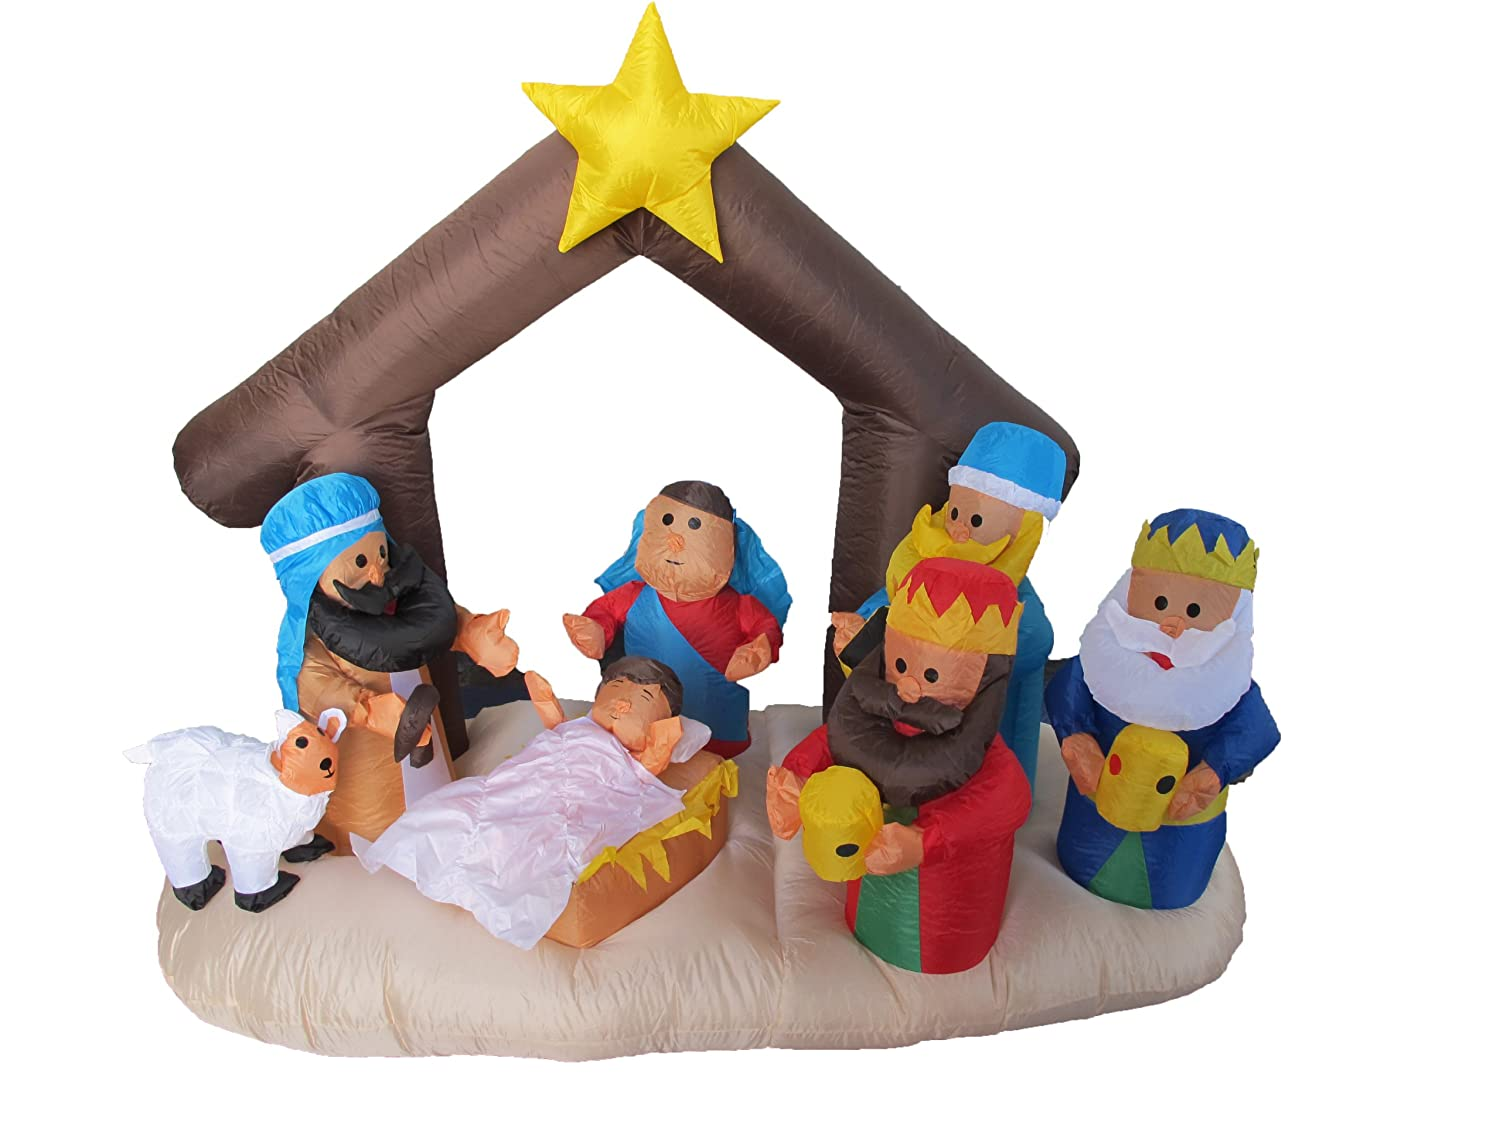 Inflatable christmas decorations outdoor cheap - Amazon Com 6 Foot Christmas Inflatable Nativity Scene With Three Kings Party Decoration Home Kitchen